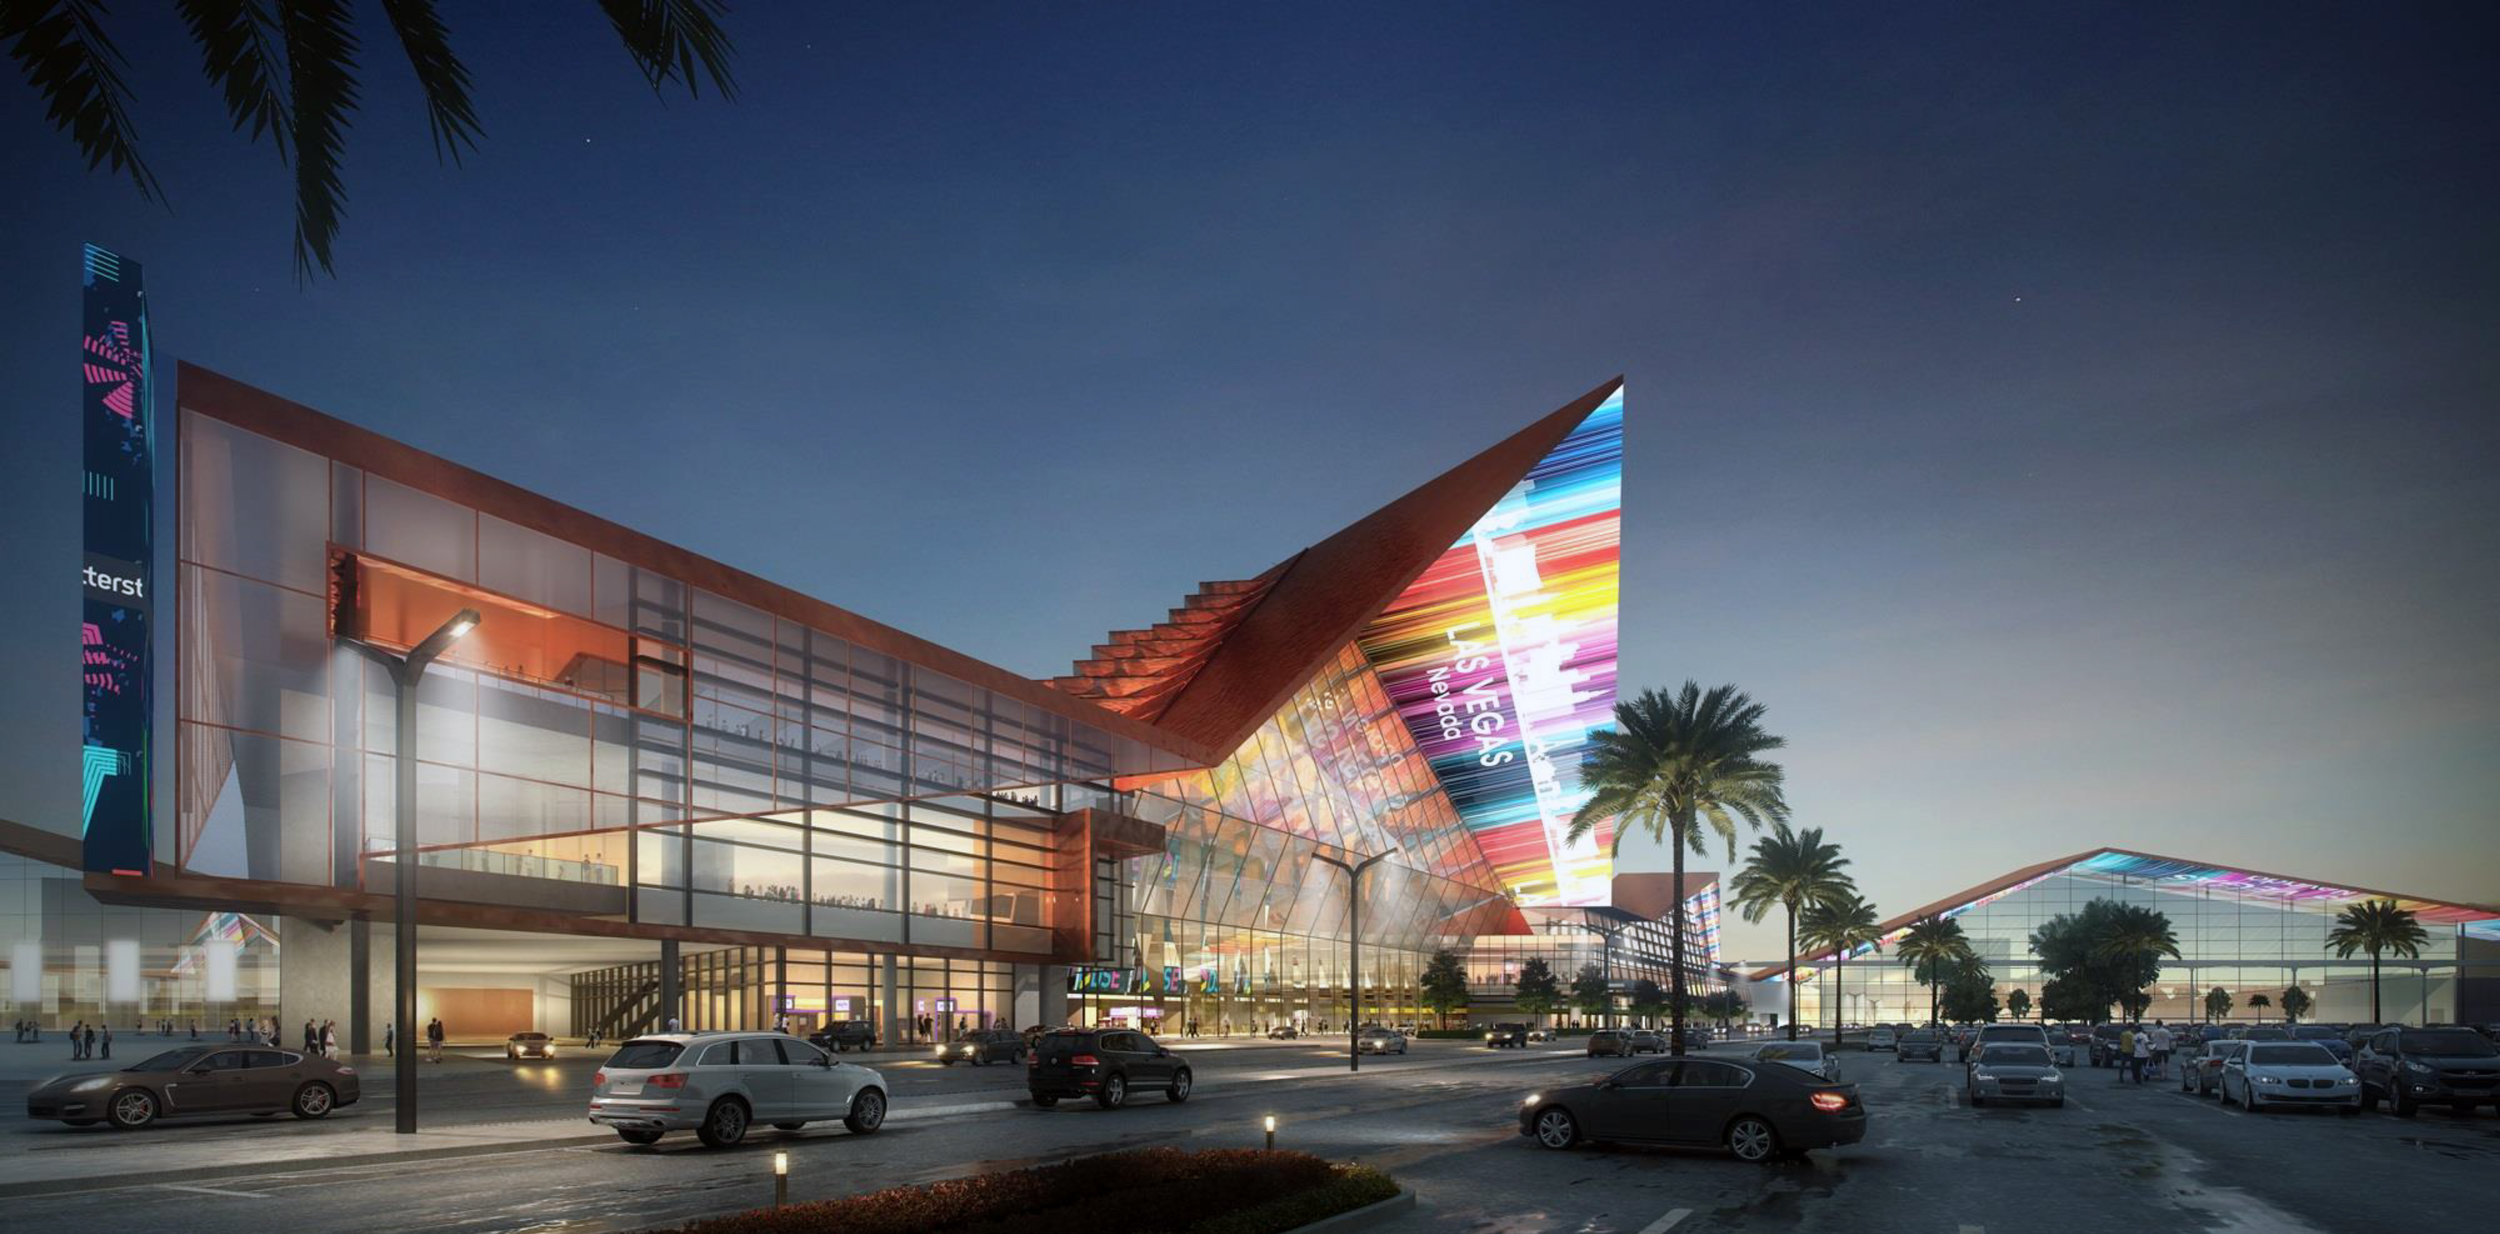 Rendering of the proposed convention center design